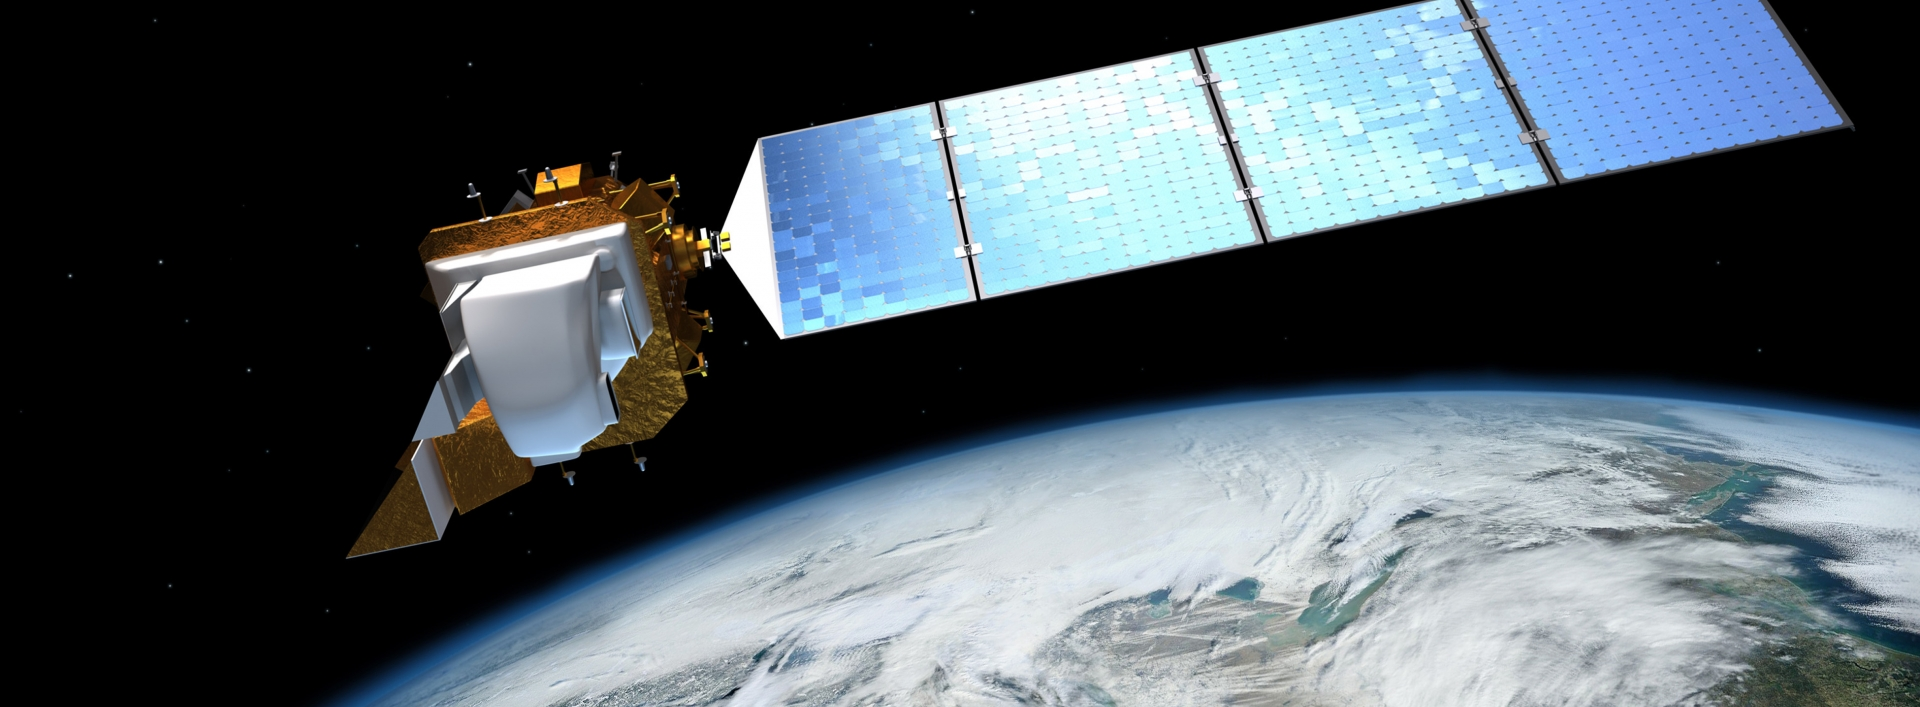 Artist's image of a satellite in space over earth